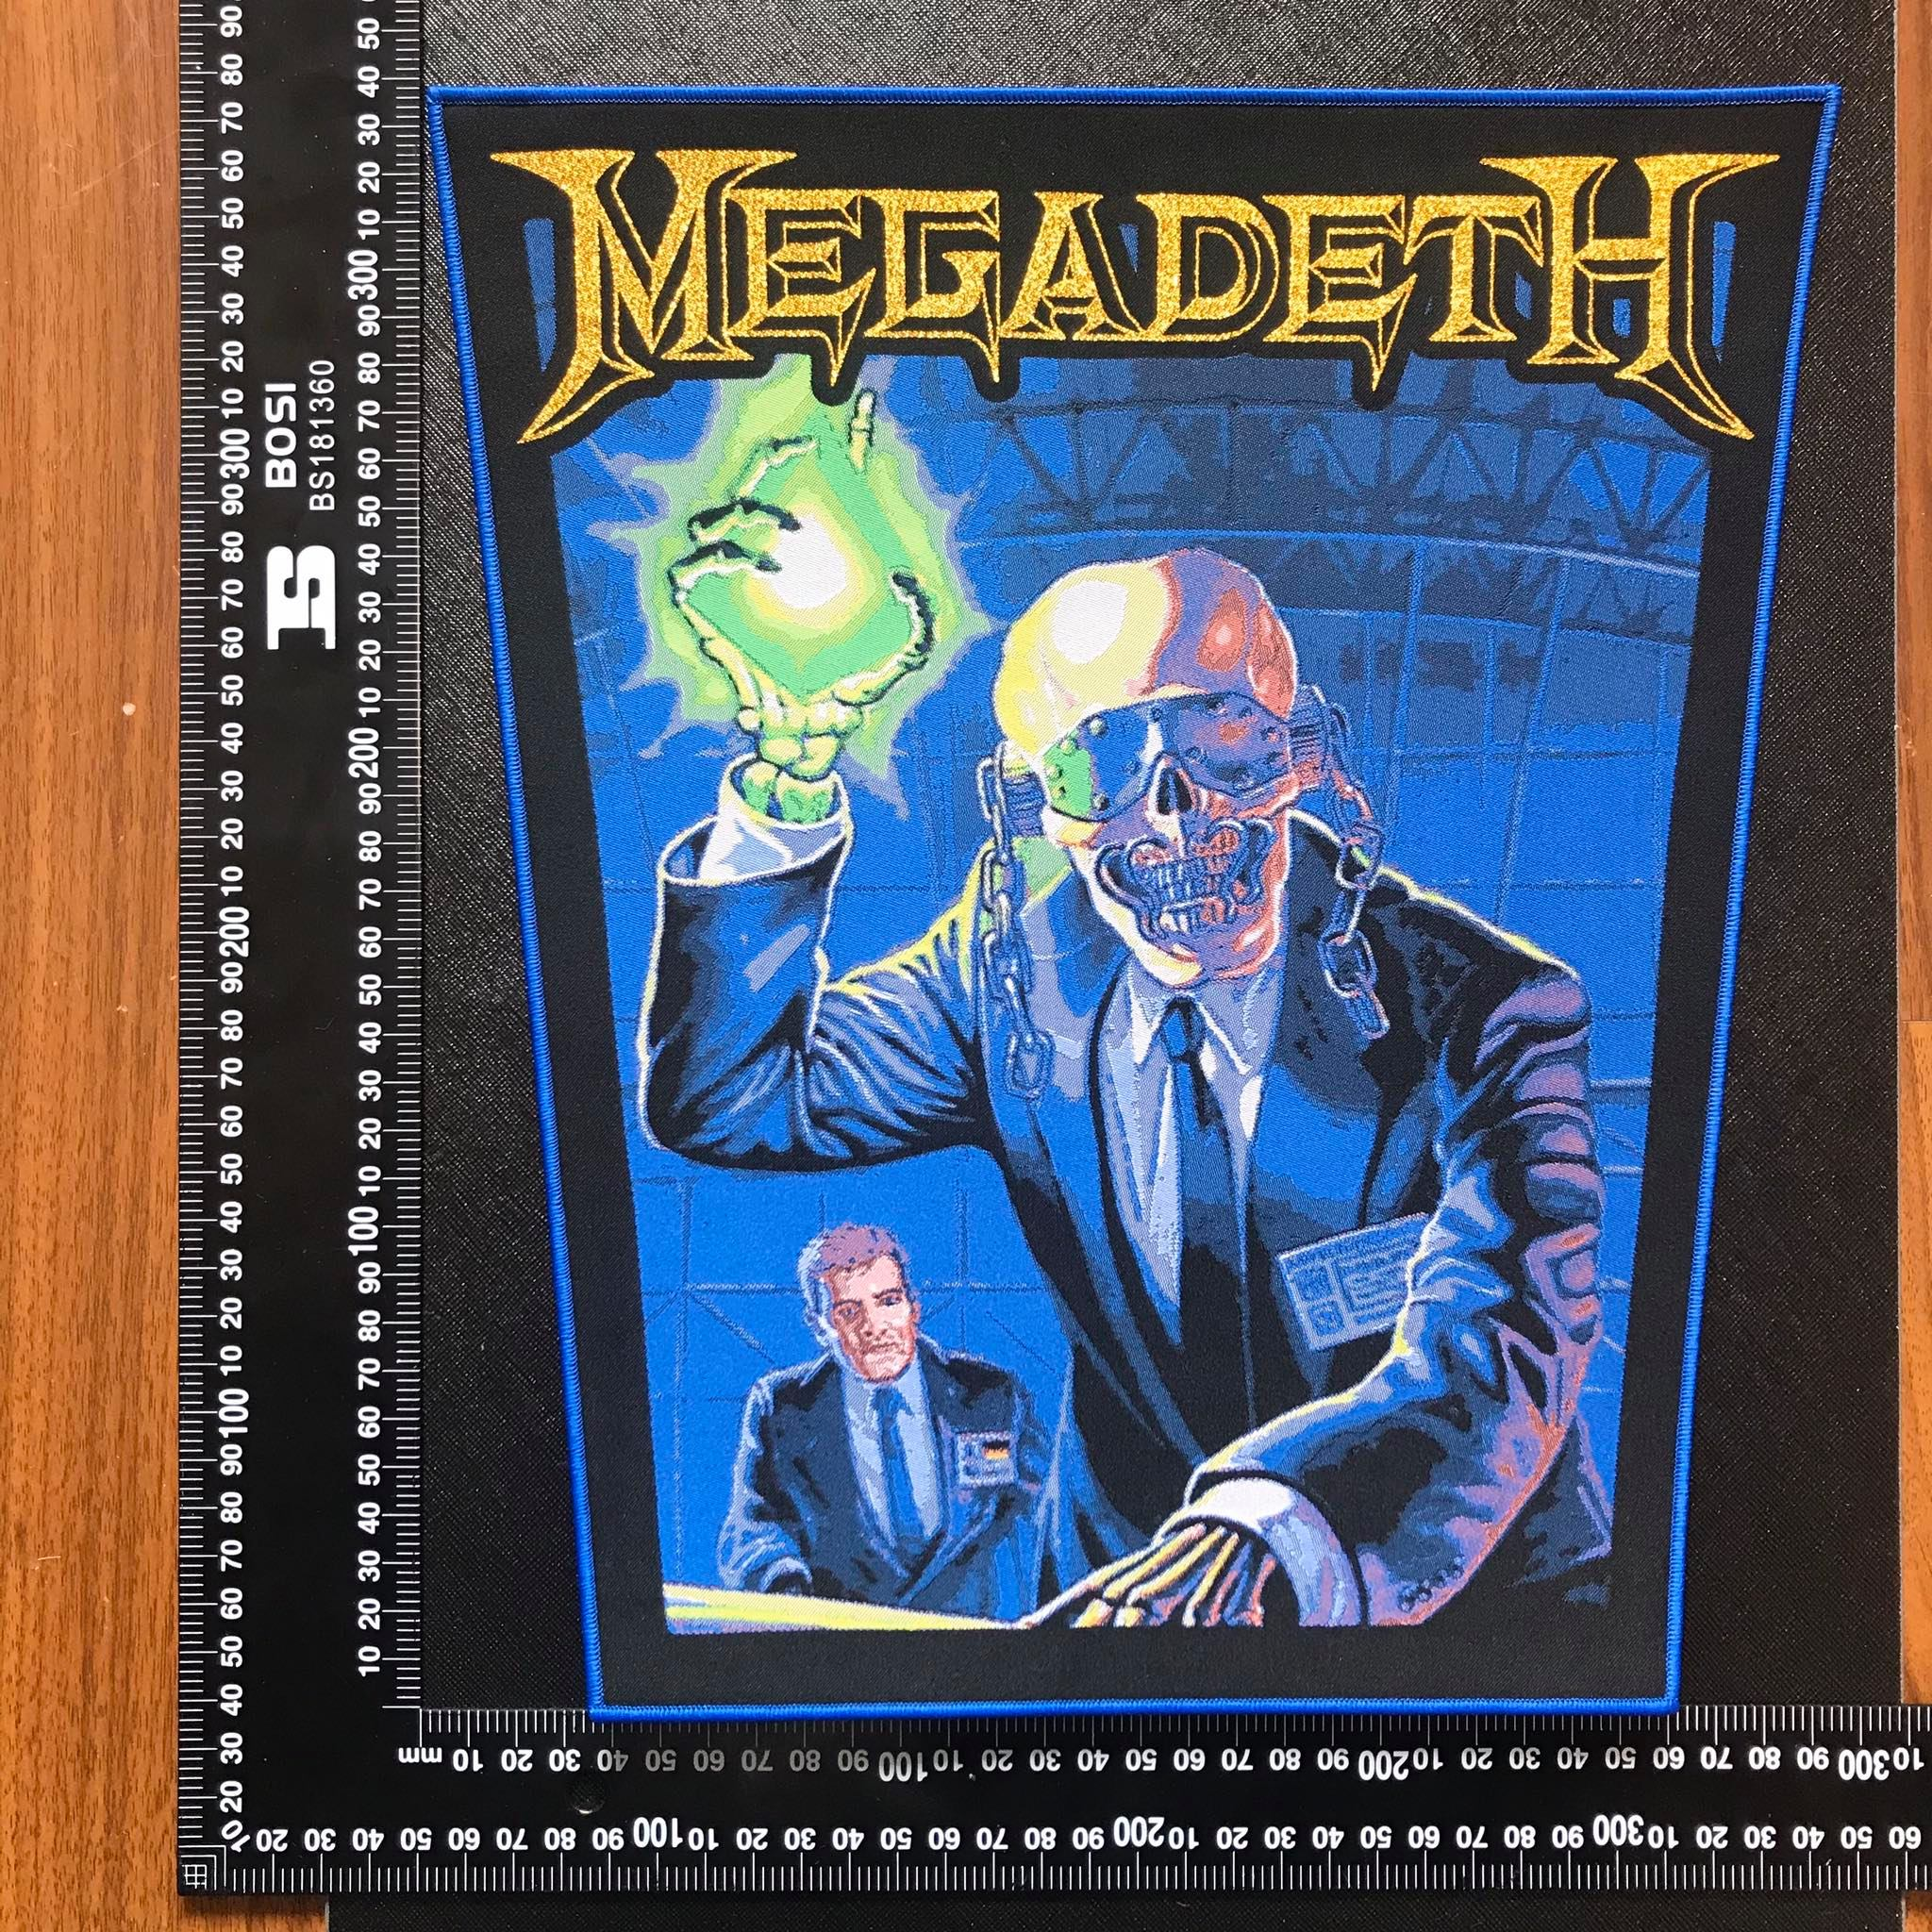 Megadeth - Rust in Peace (Rare)